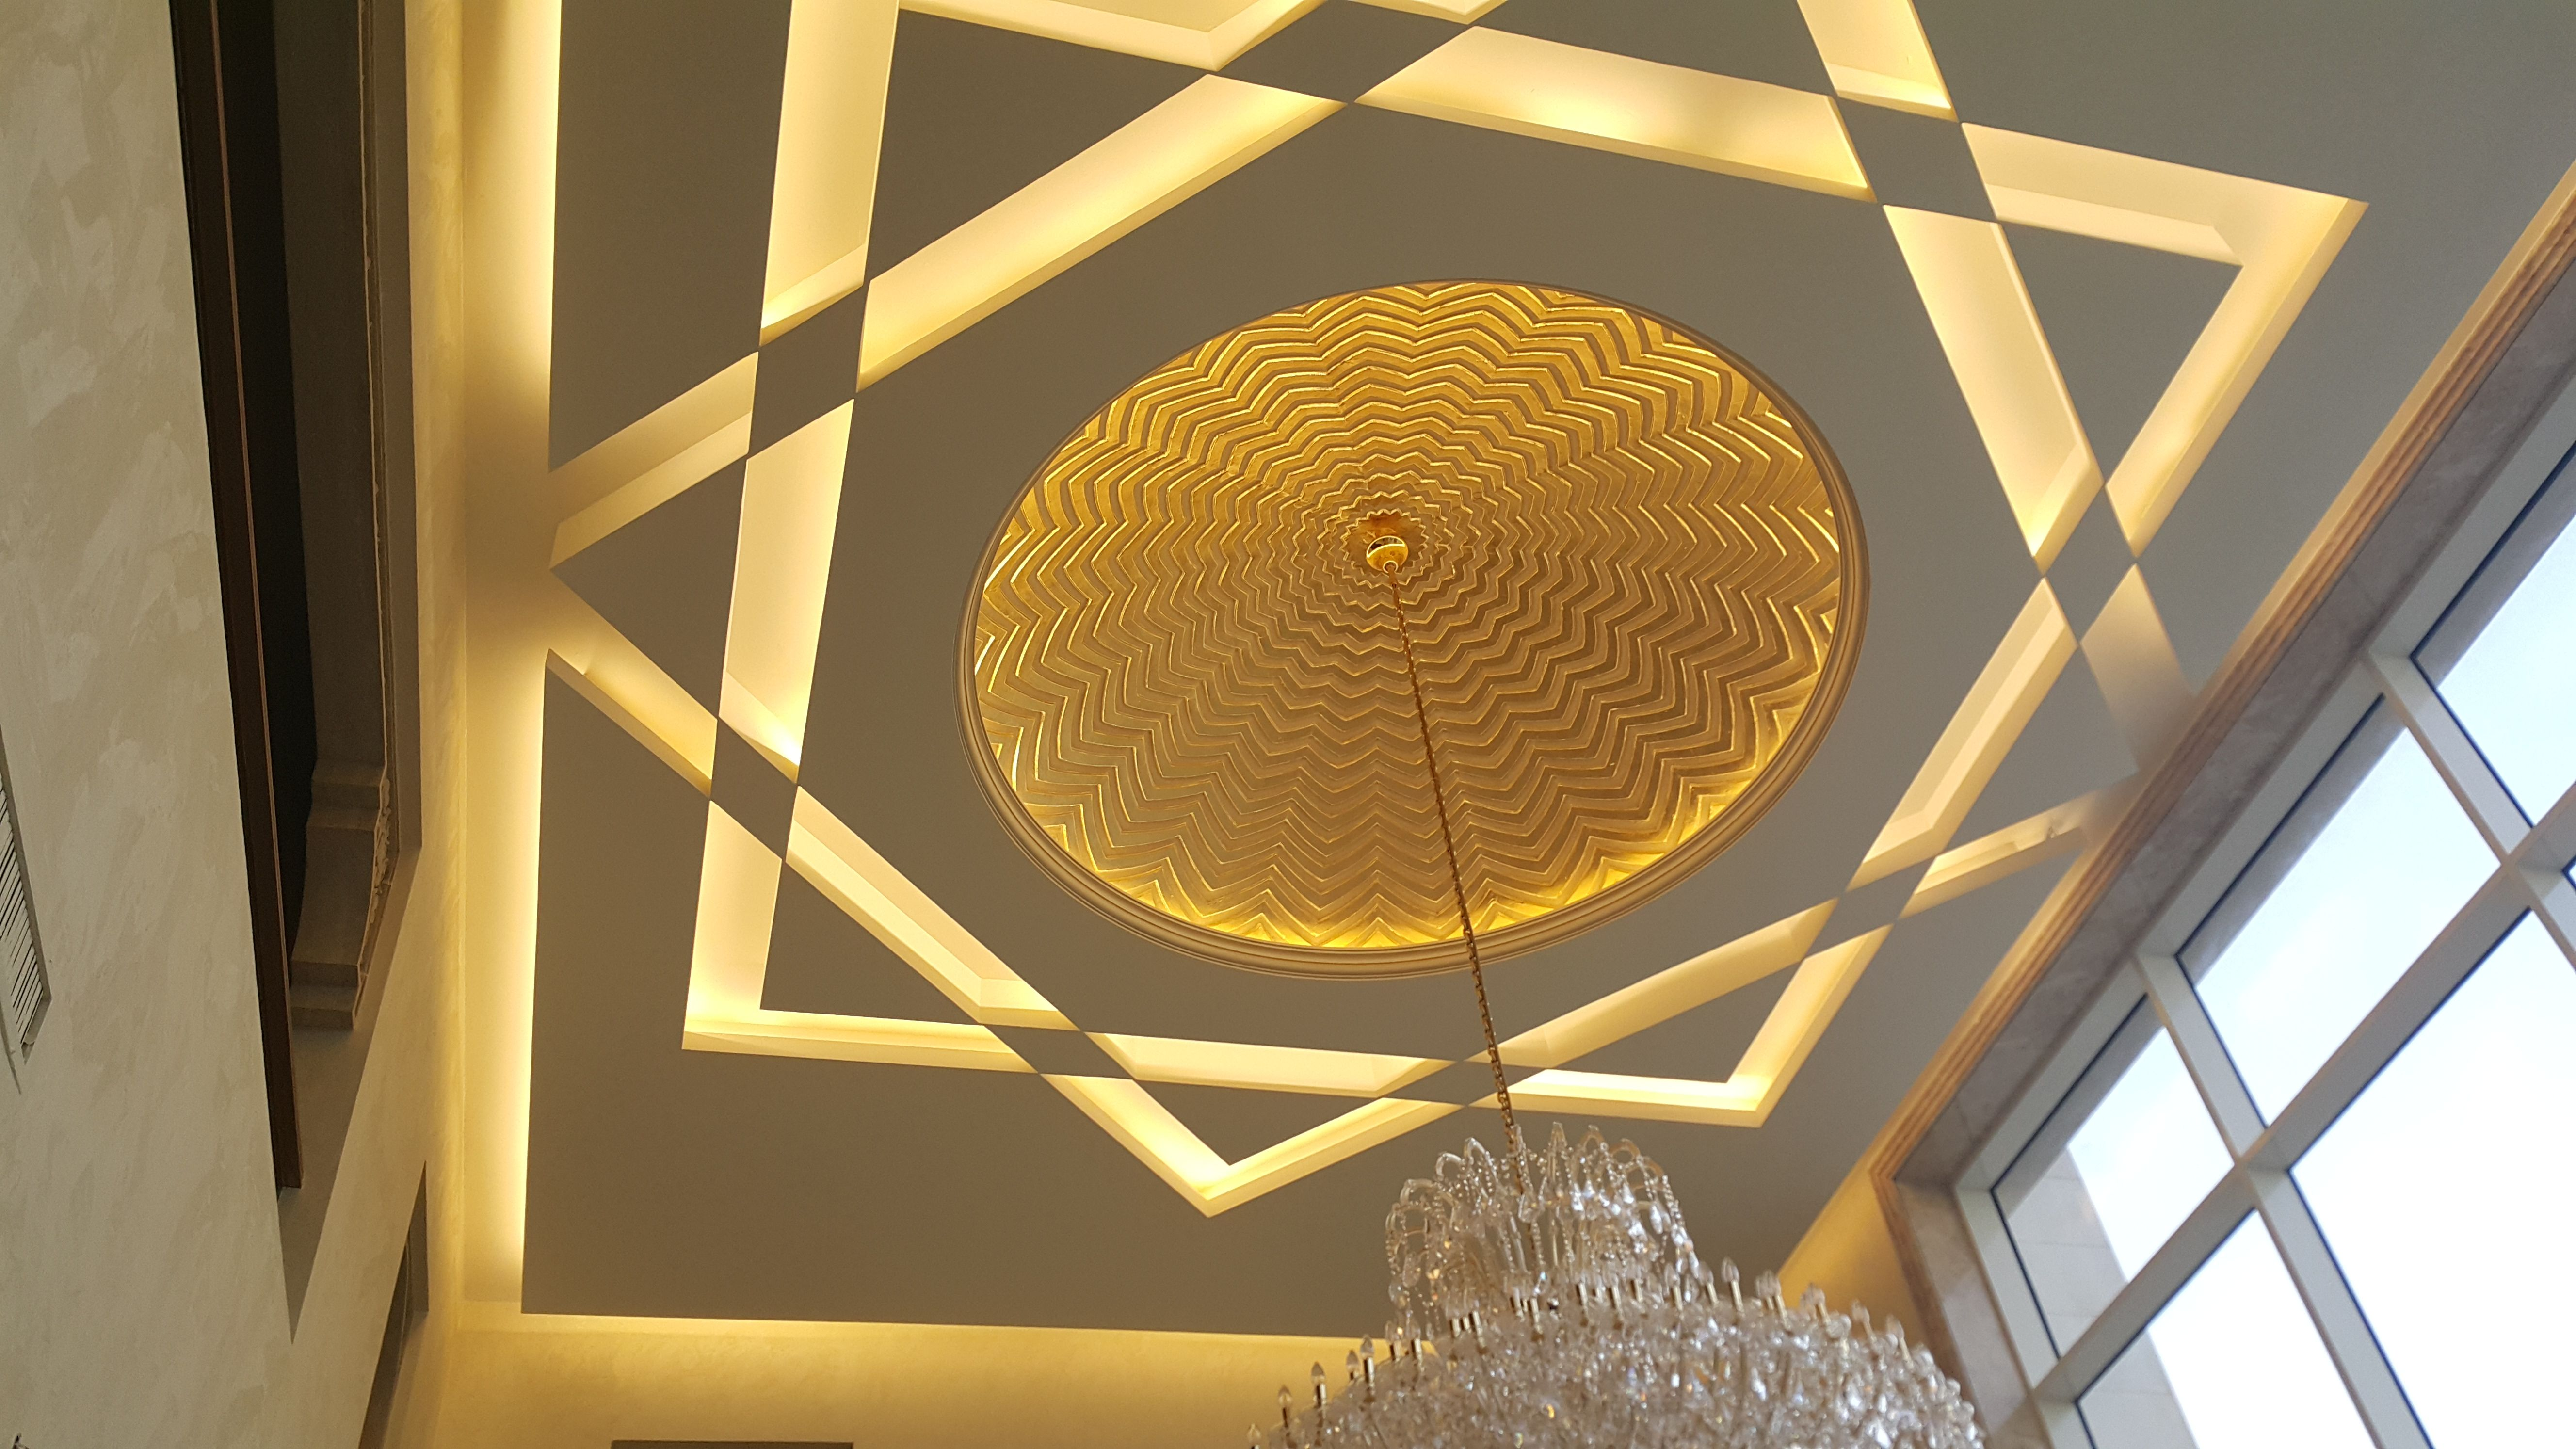 Pin by محمد عثمان خان on Screenshots | Ceiling design ...